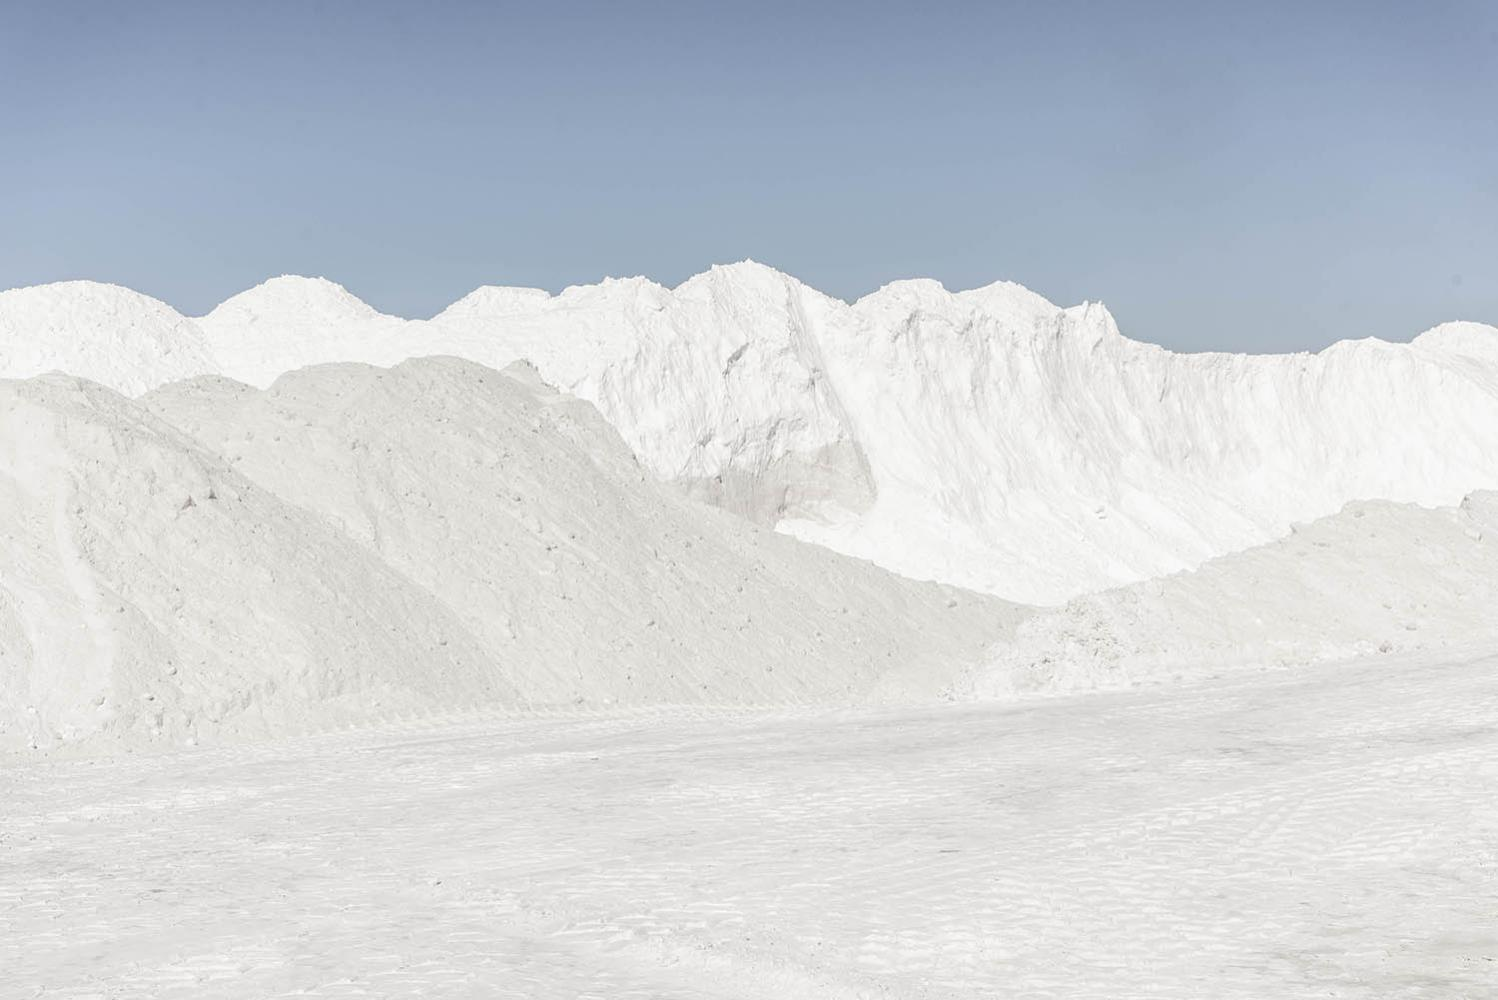 Tailings of sub product at Albemarle Lithium plant in the Atacama Desert, Chile.2021